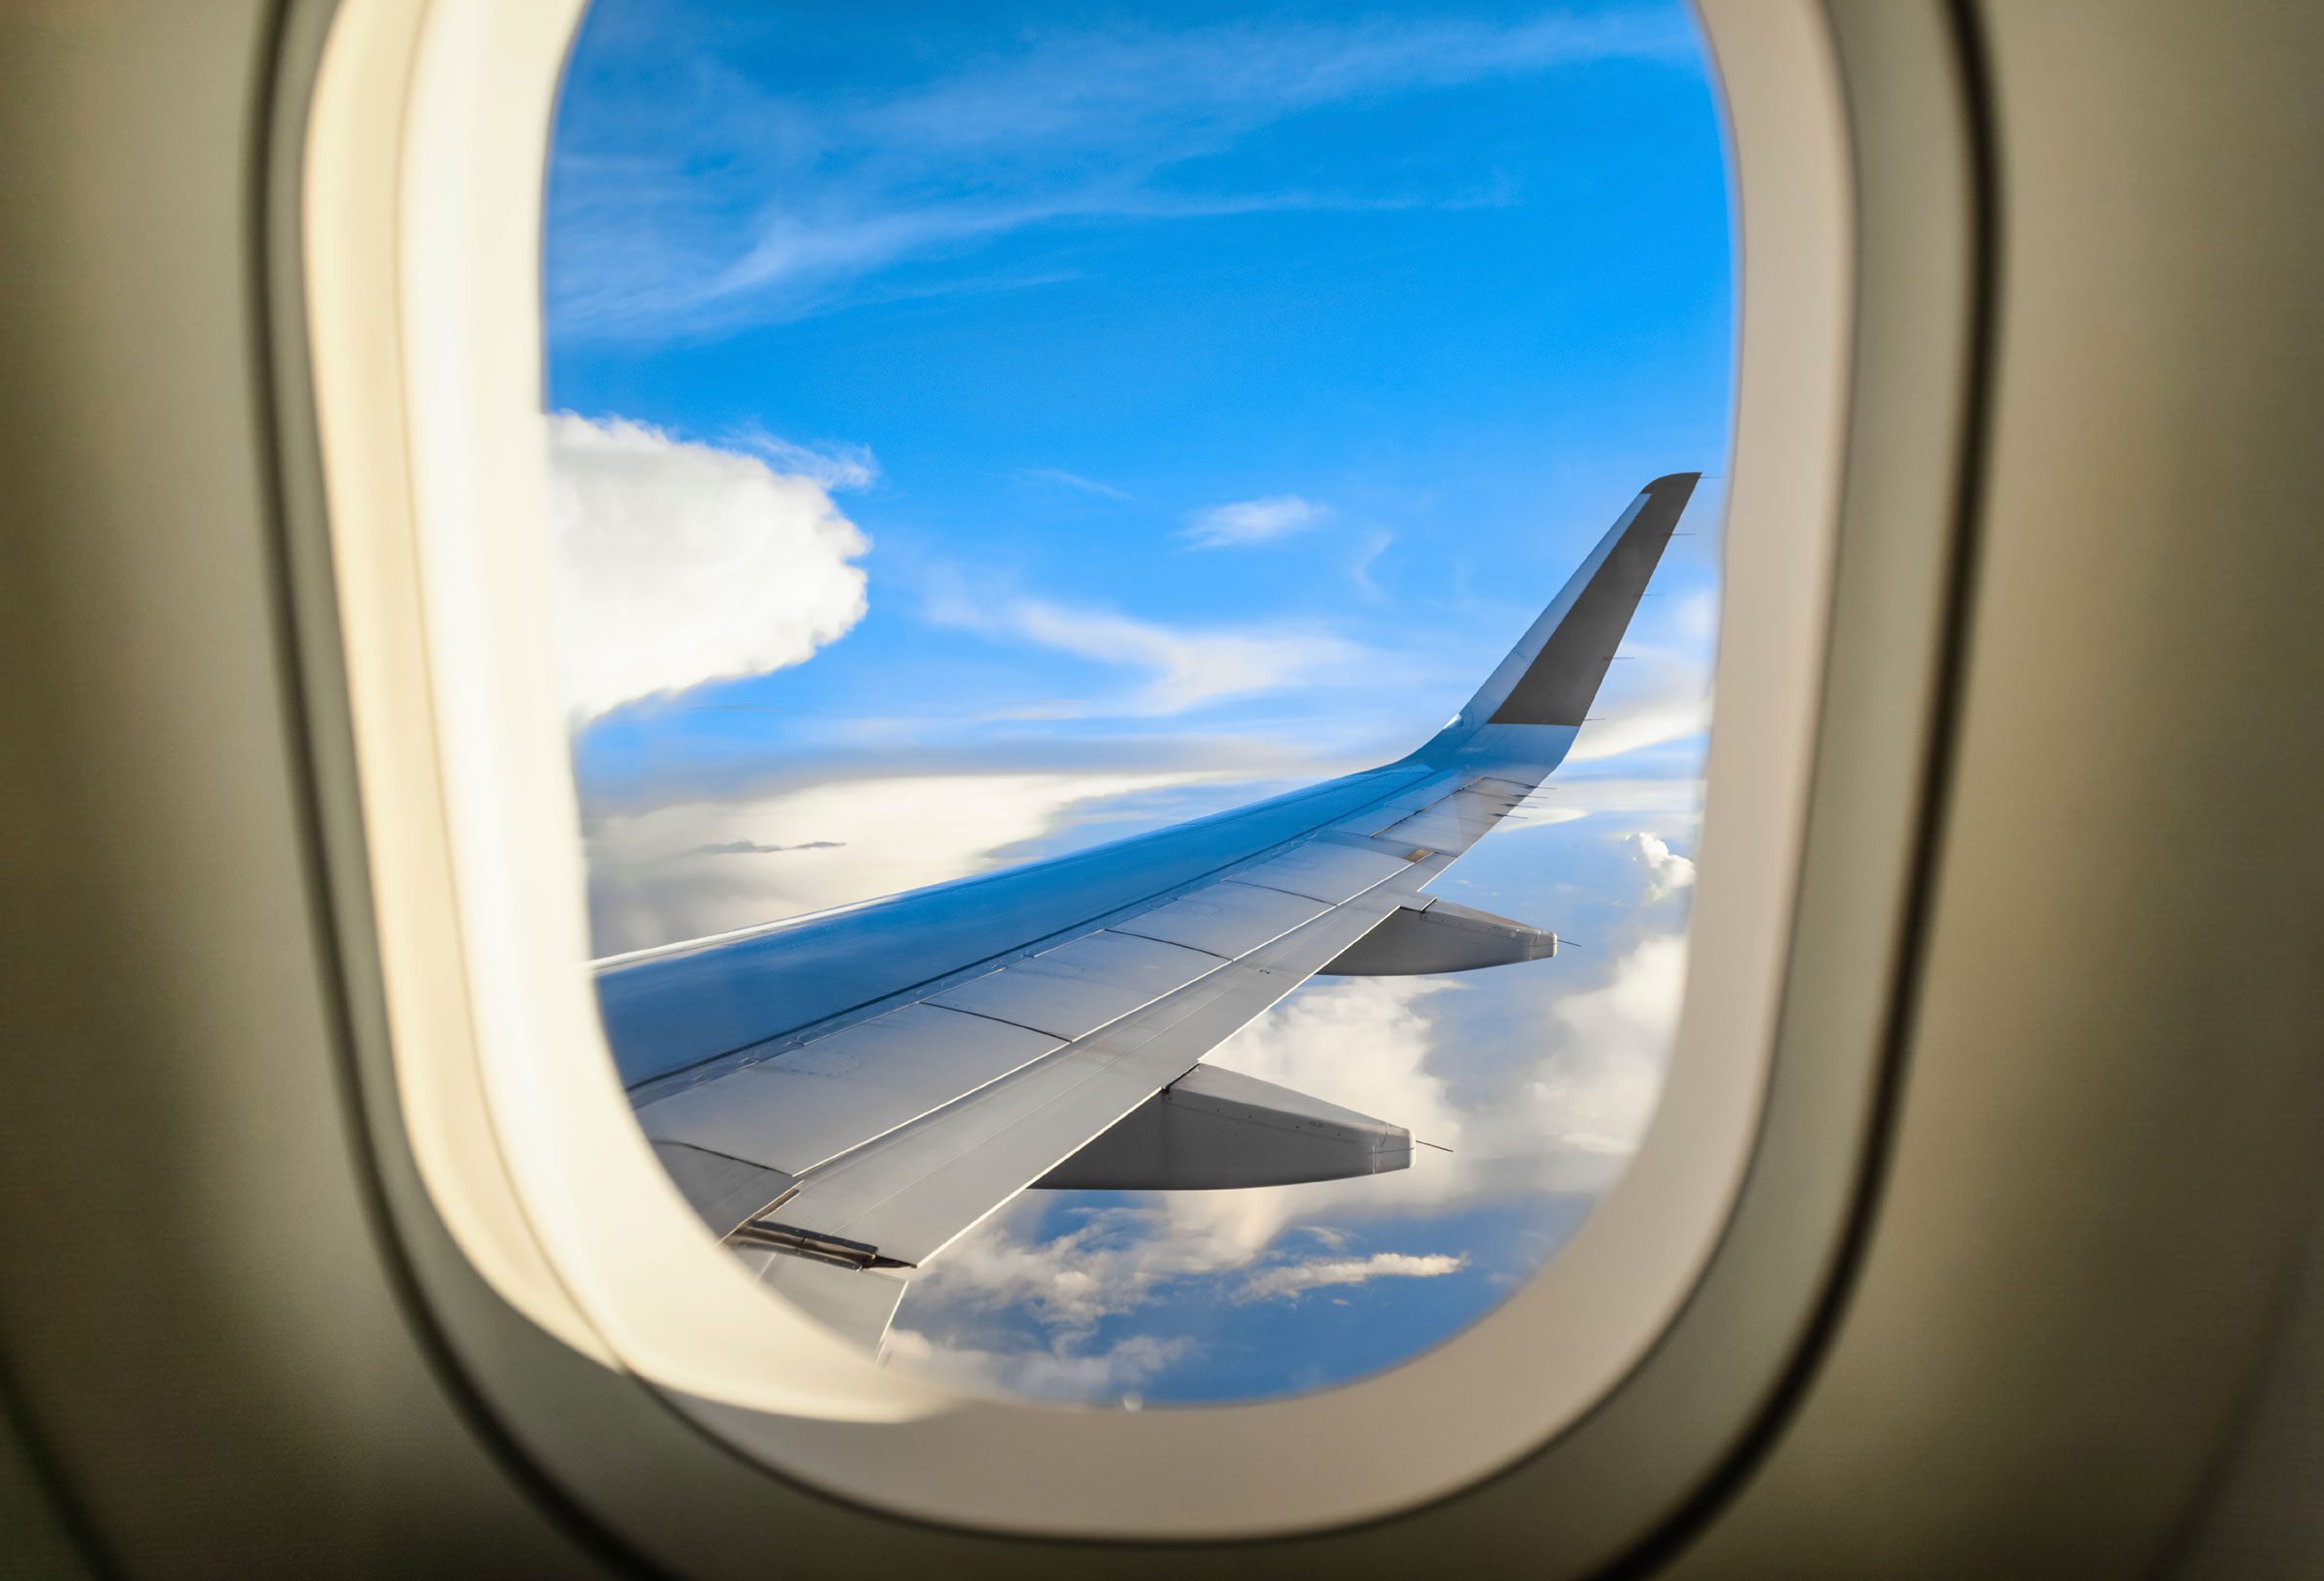 The smoothest place to sit is often over or near the wing.